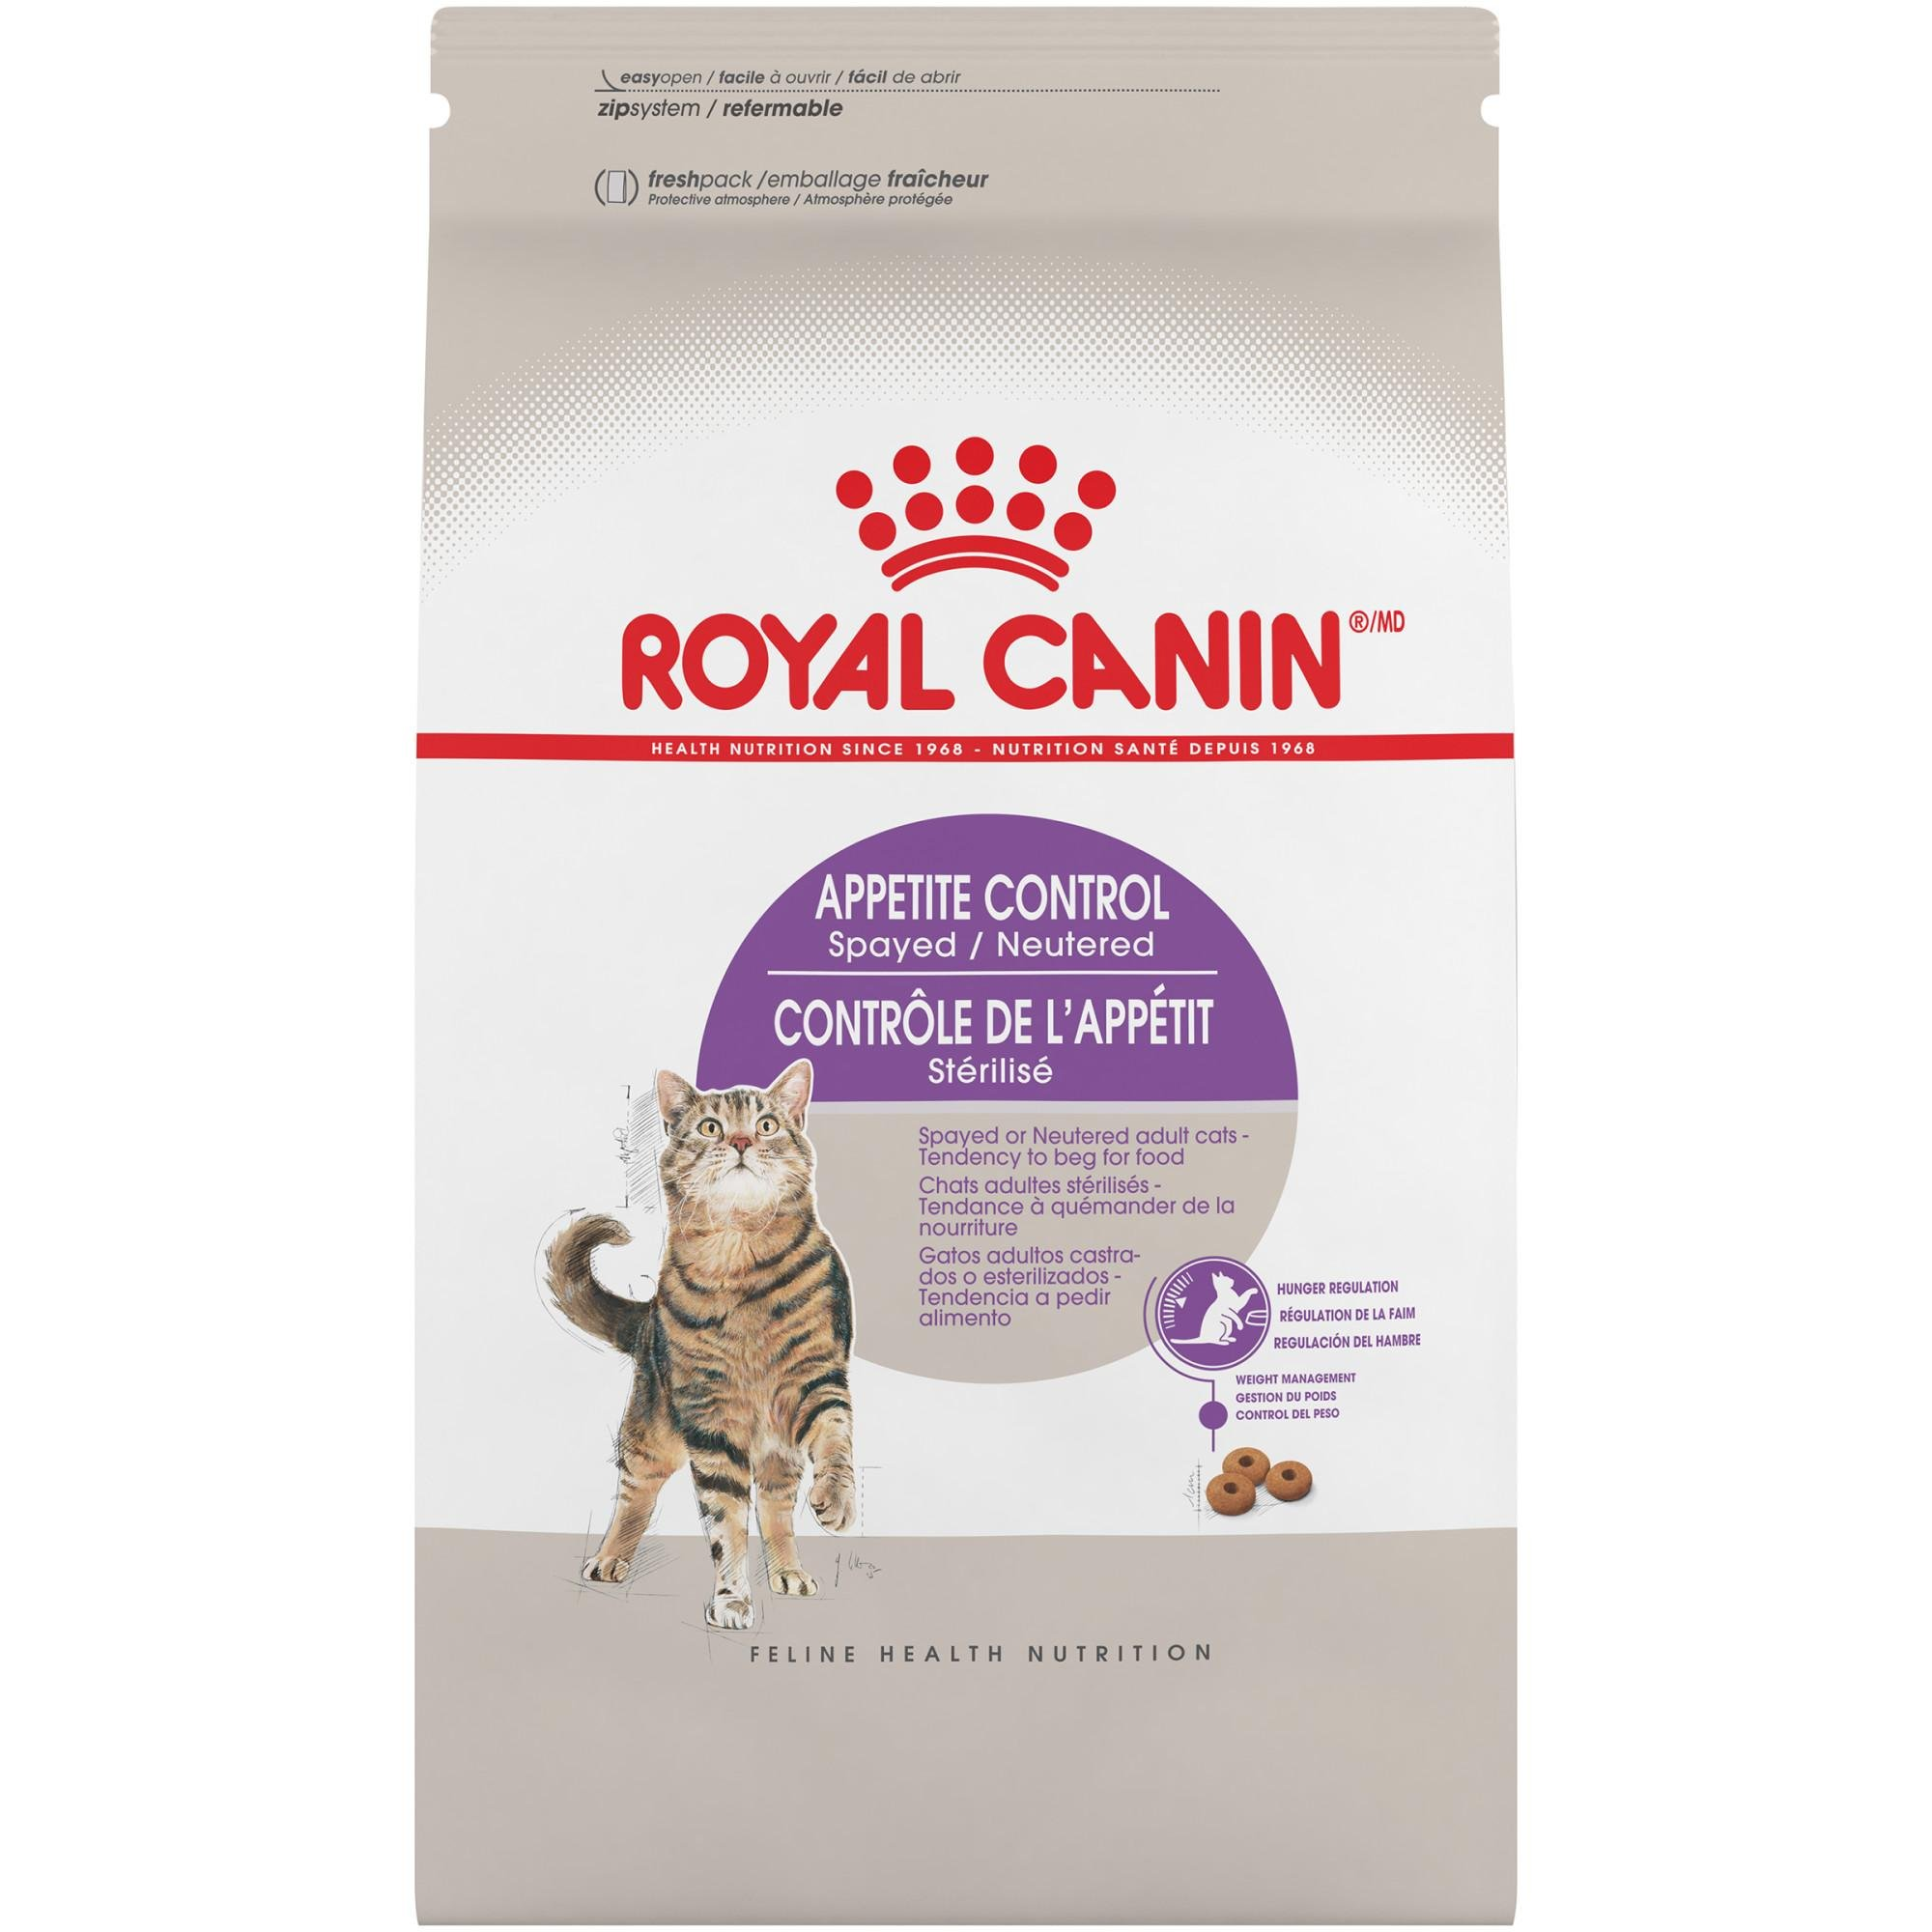 Royal Canin FELINE HEALTH NUTRITION Spayed/Neutered Appetite Control dry cat food, 6-Pound